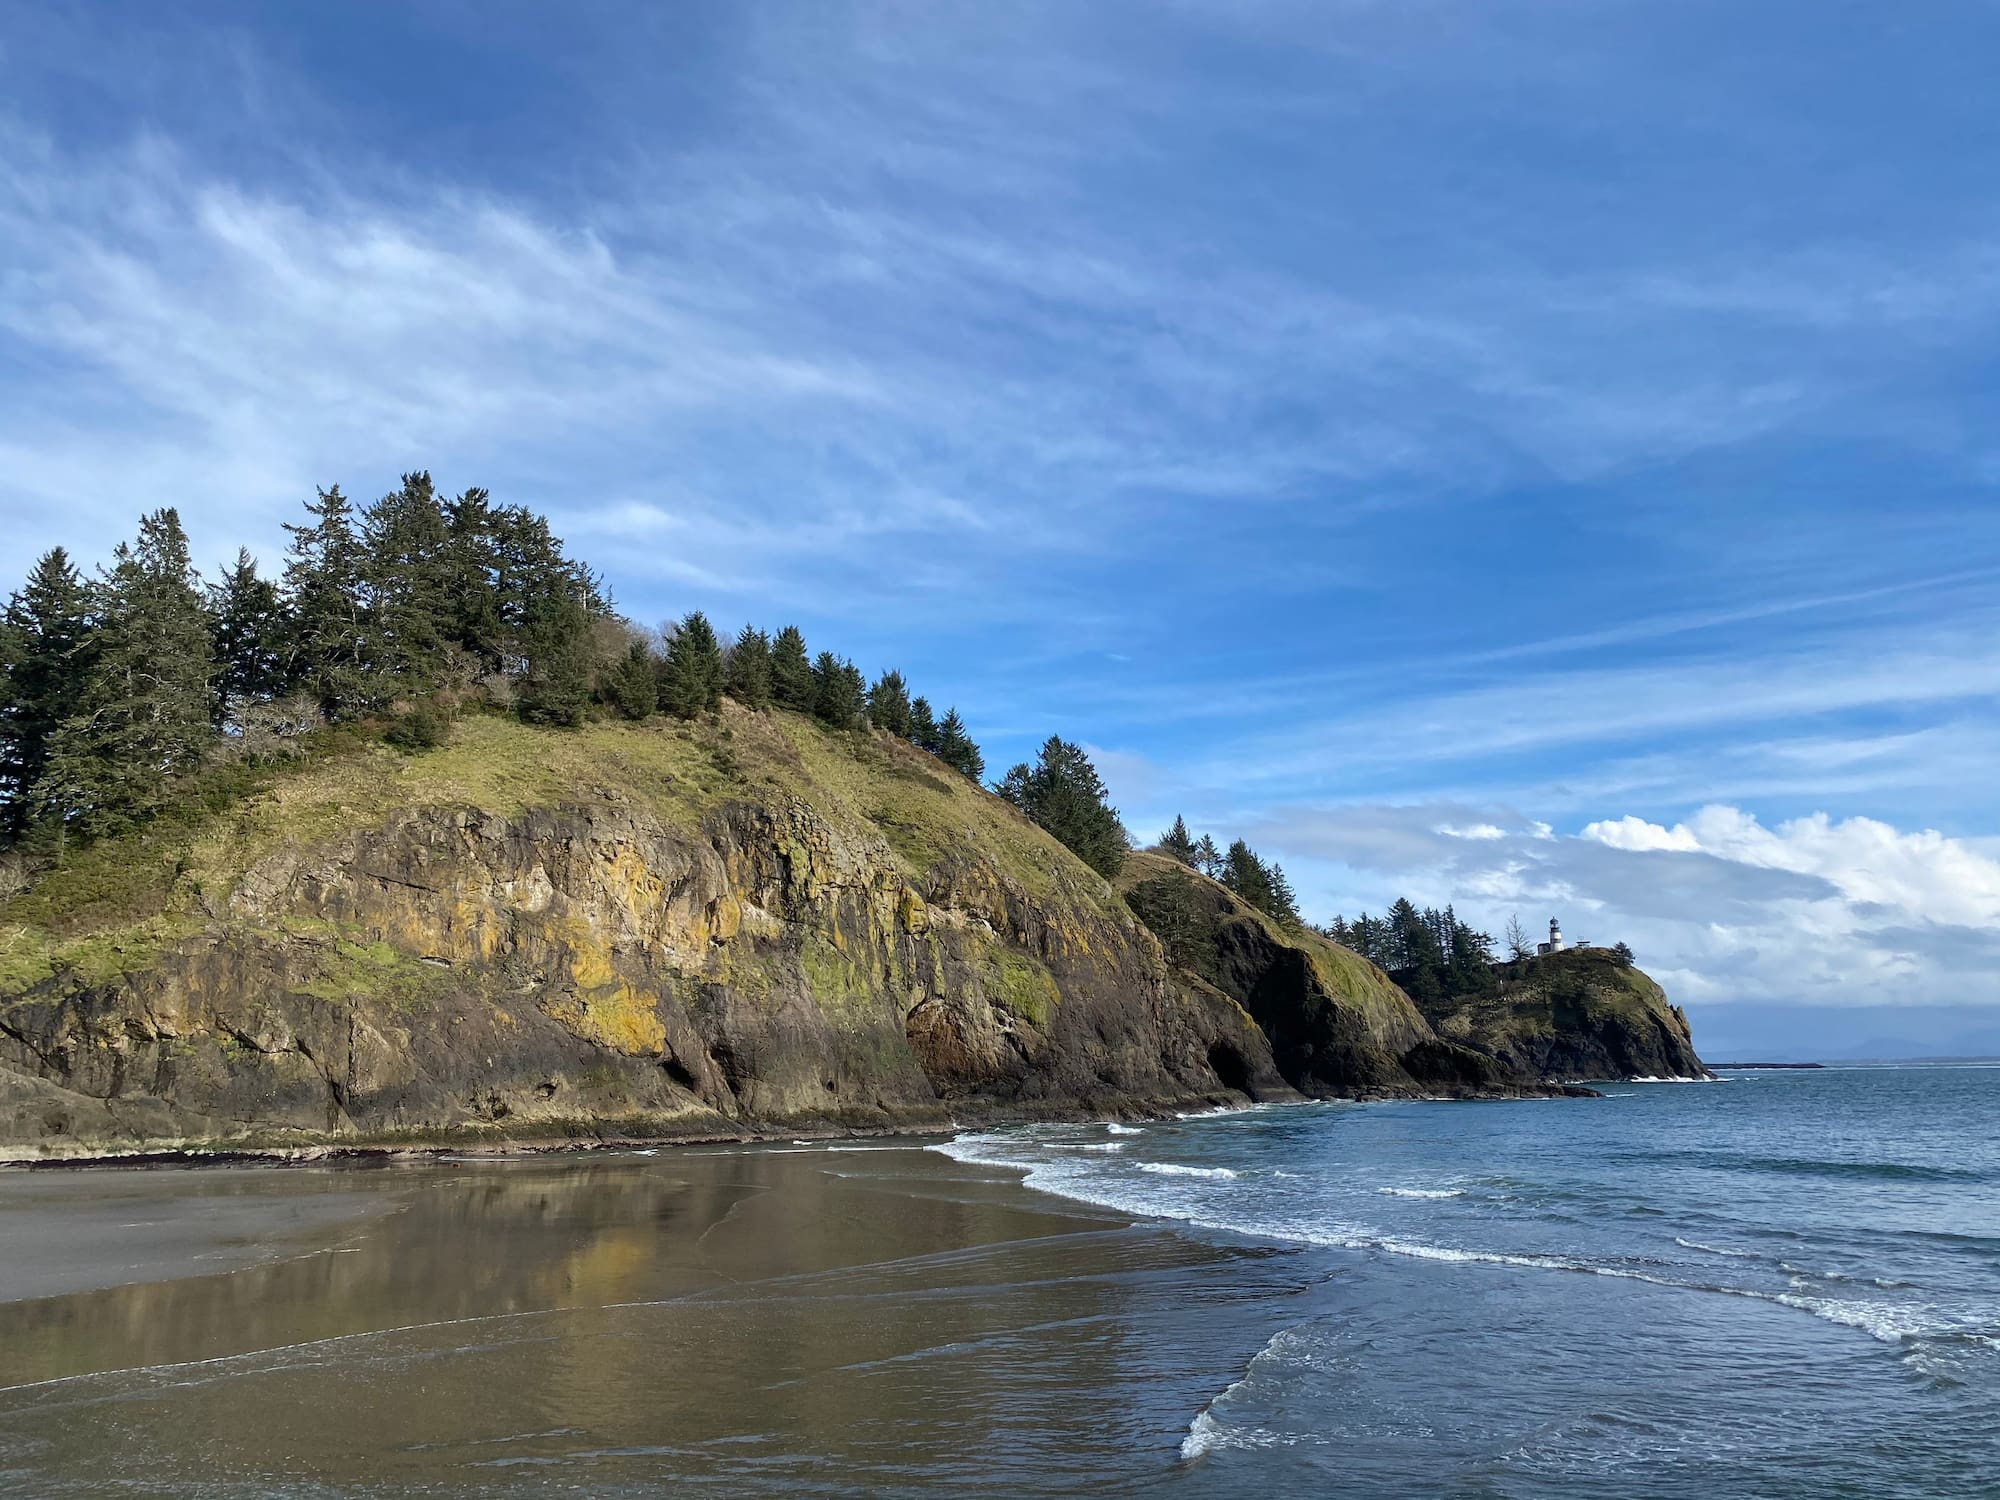 bluff by the ocean